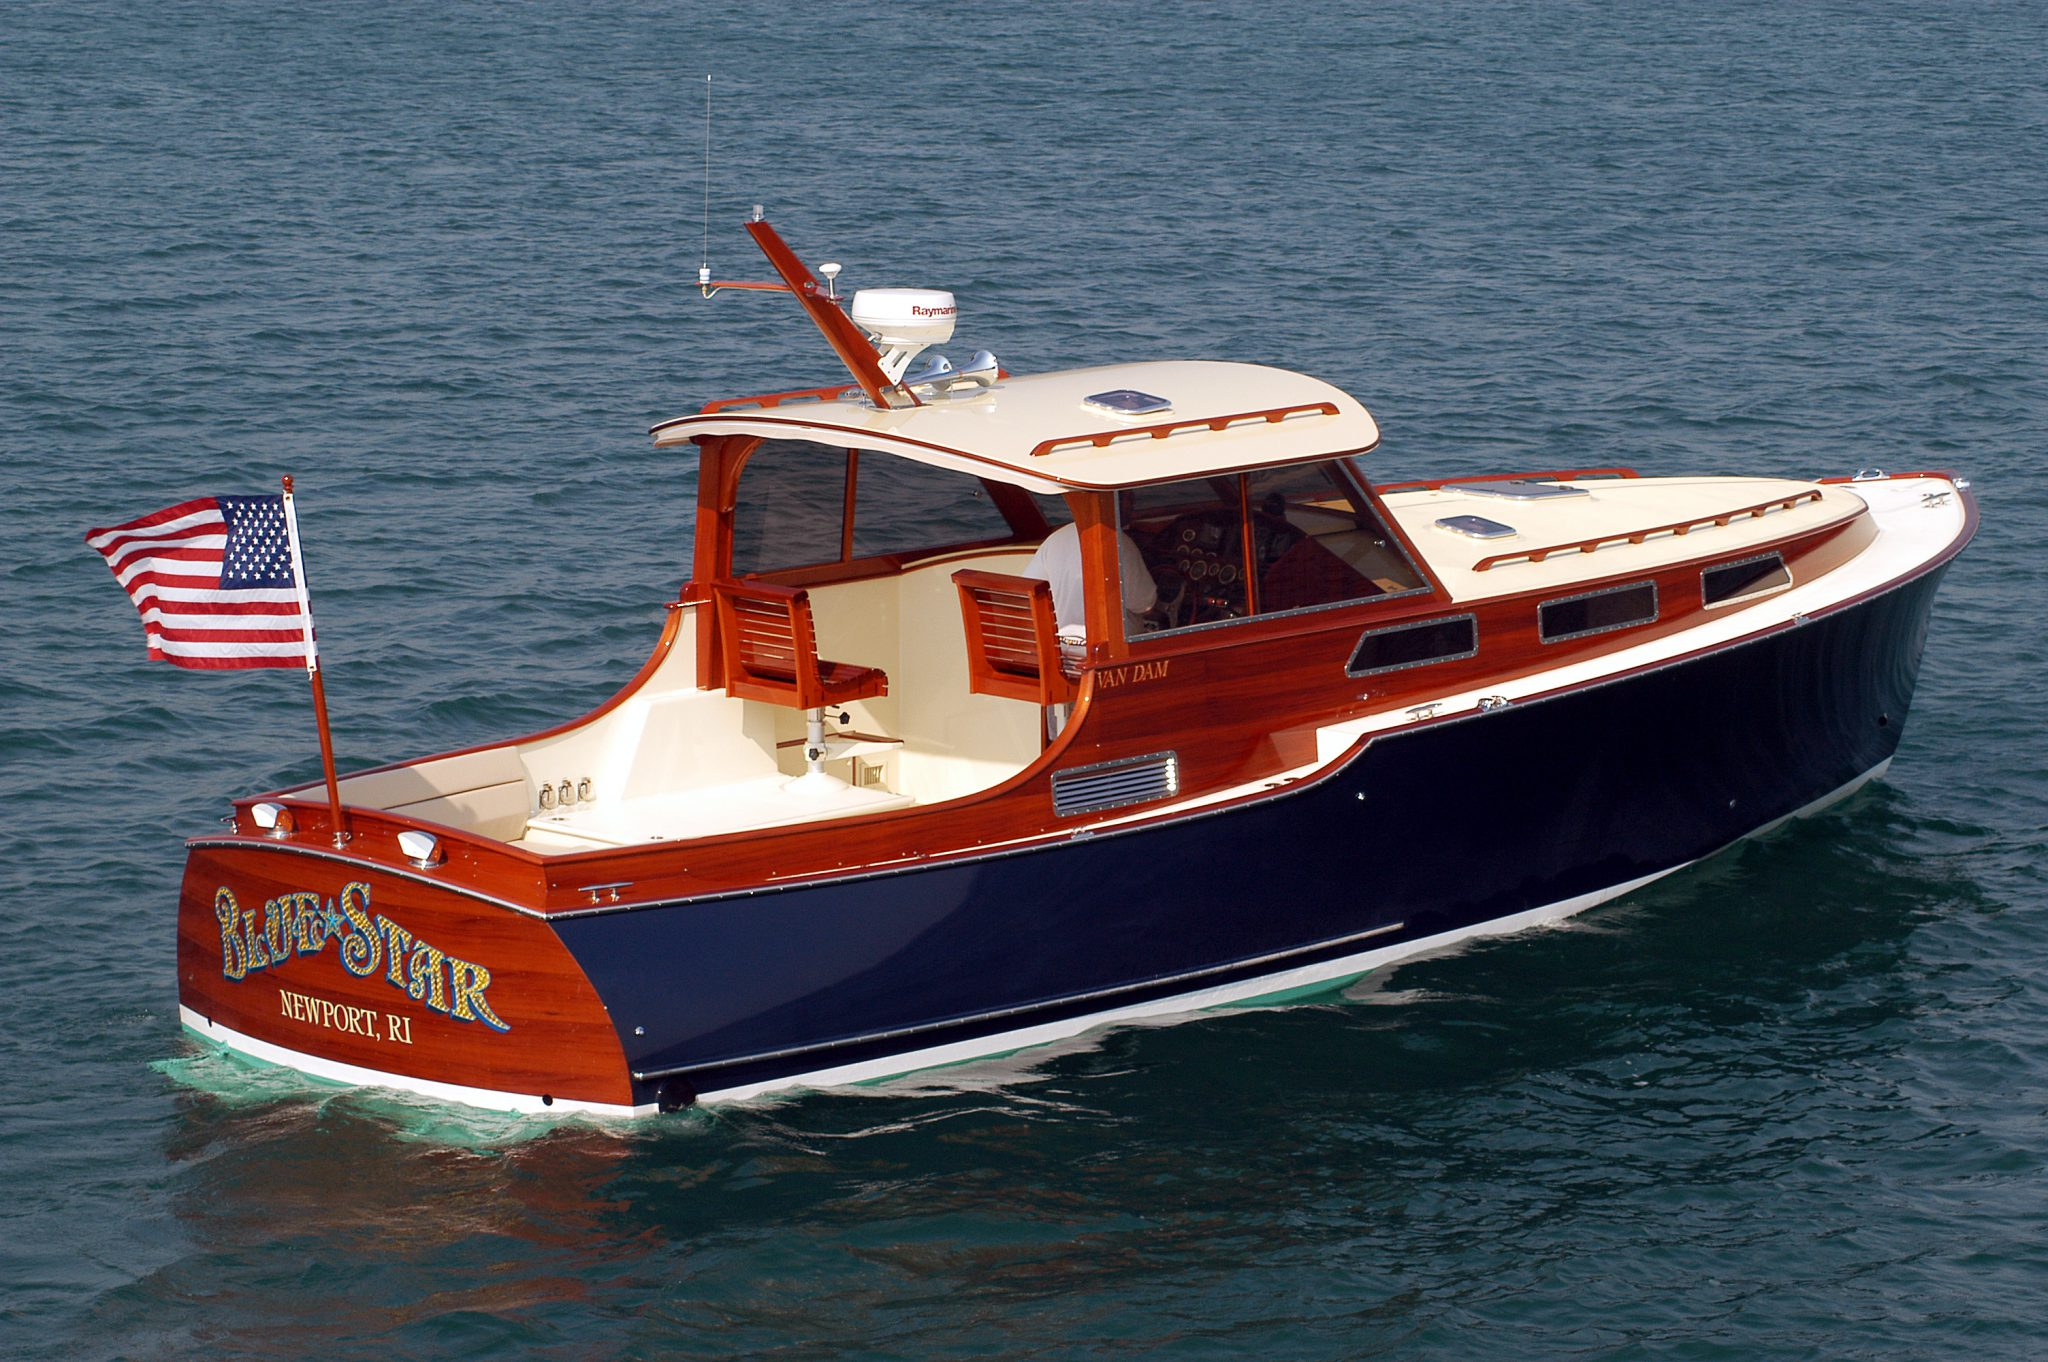 Blue Star offers traditional motor yacht styling